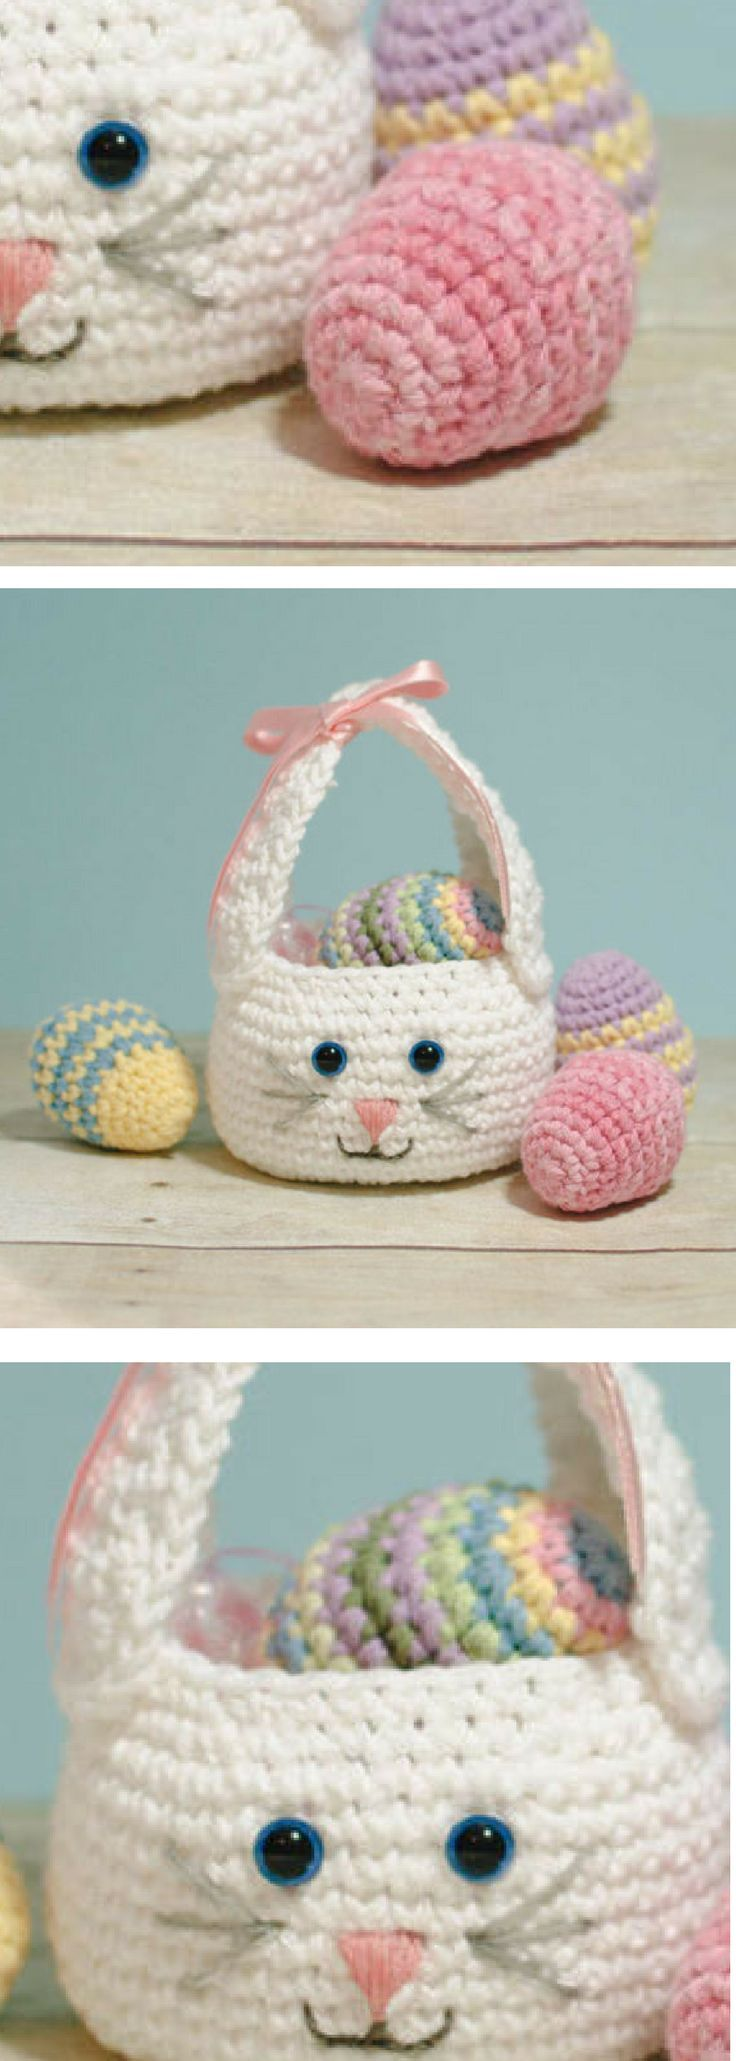 Amazing Holiday Crochet Patterns Festooning - Sewing Pattern for ...